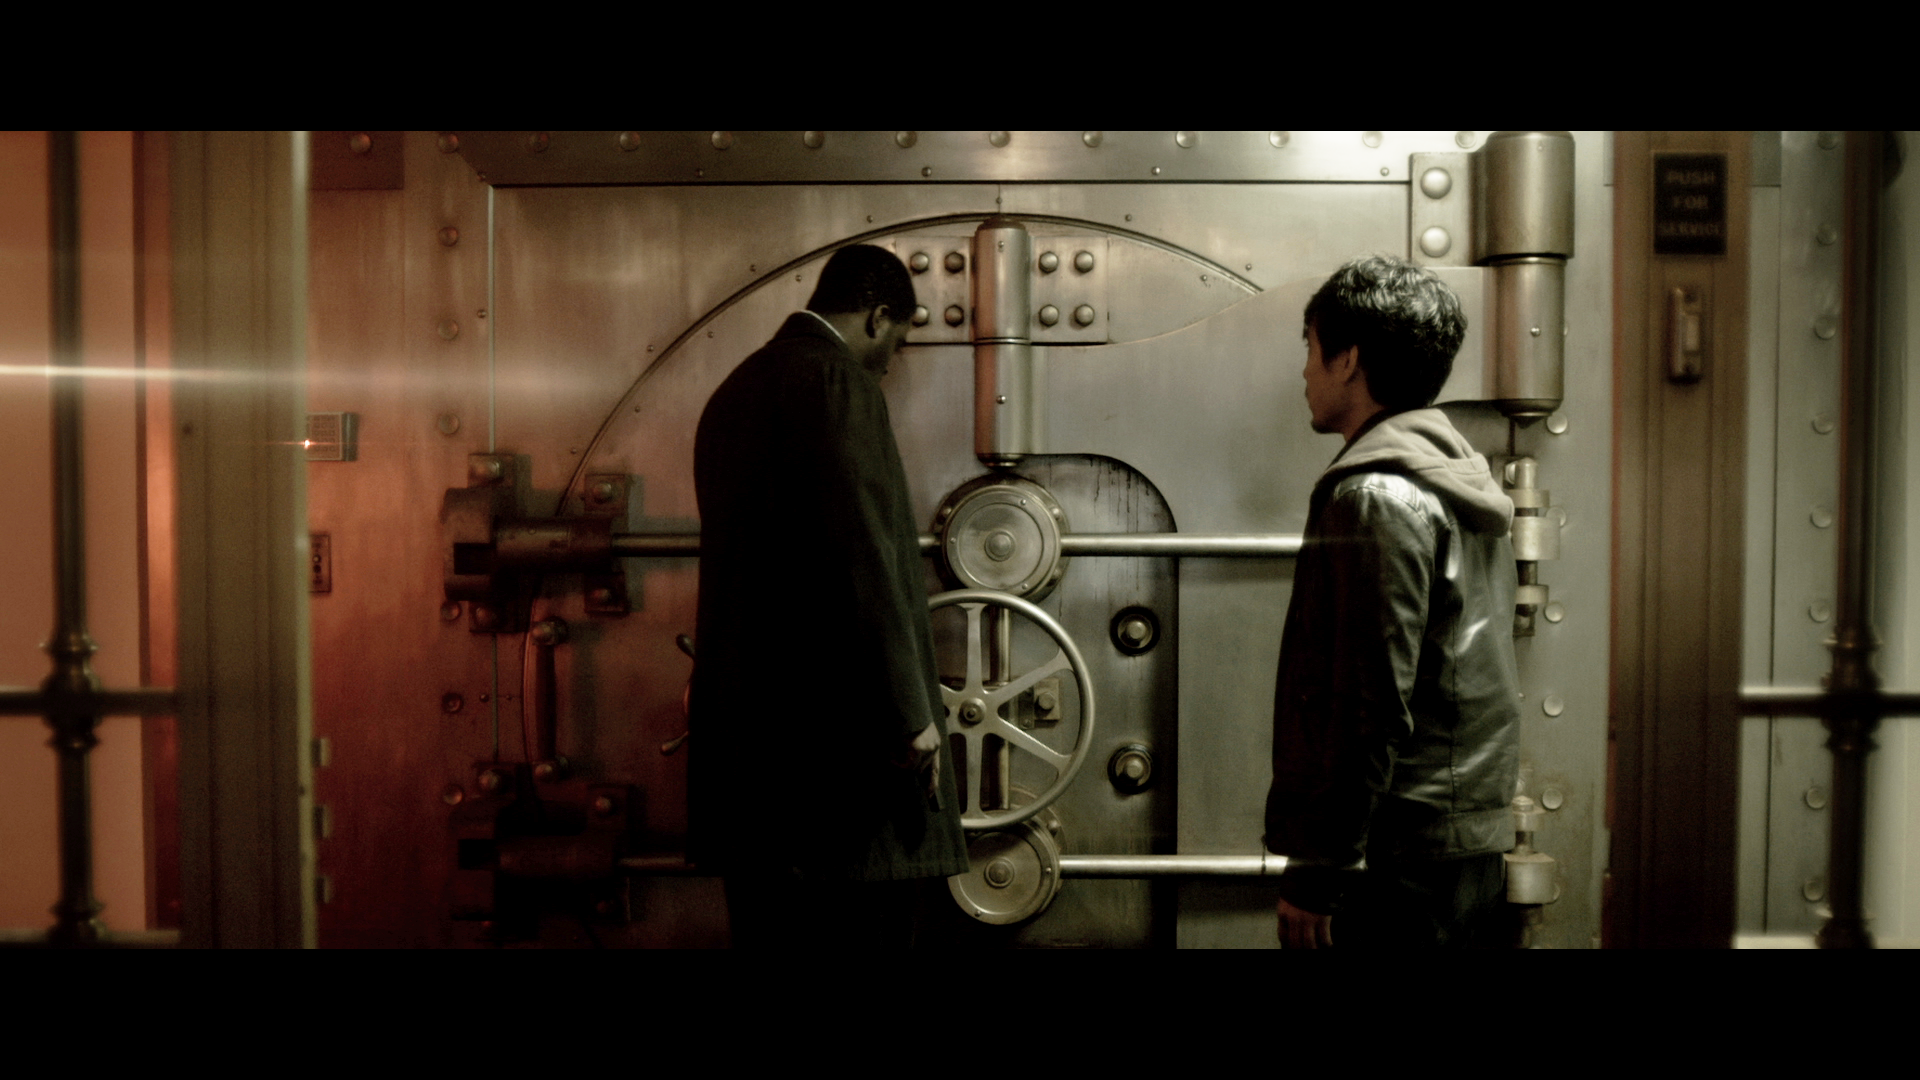 Starving - Linc and Lee inside the infected bank